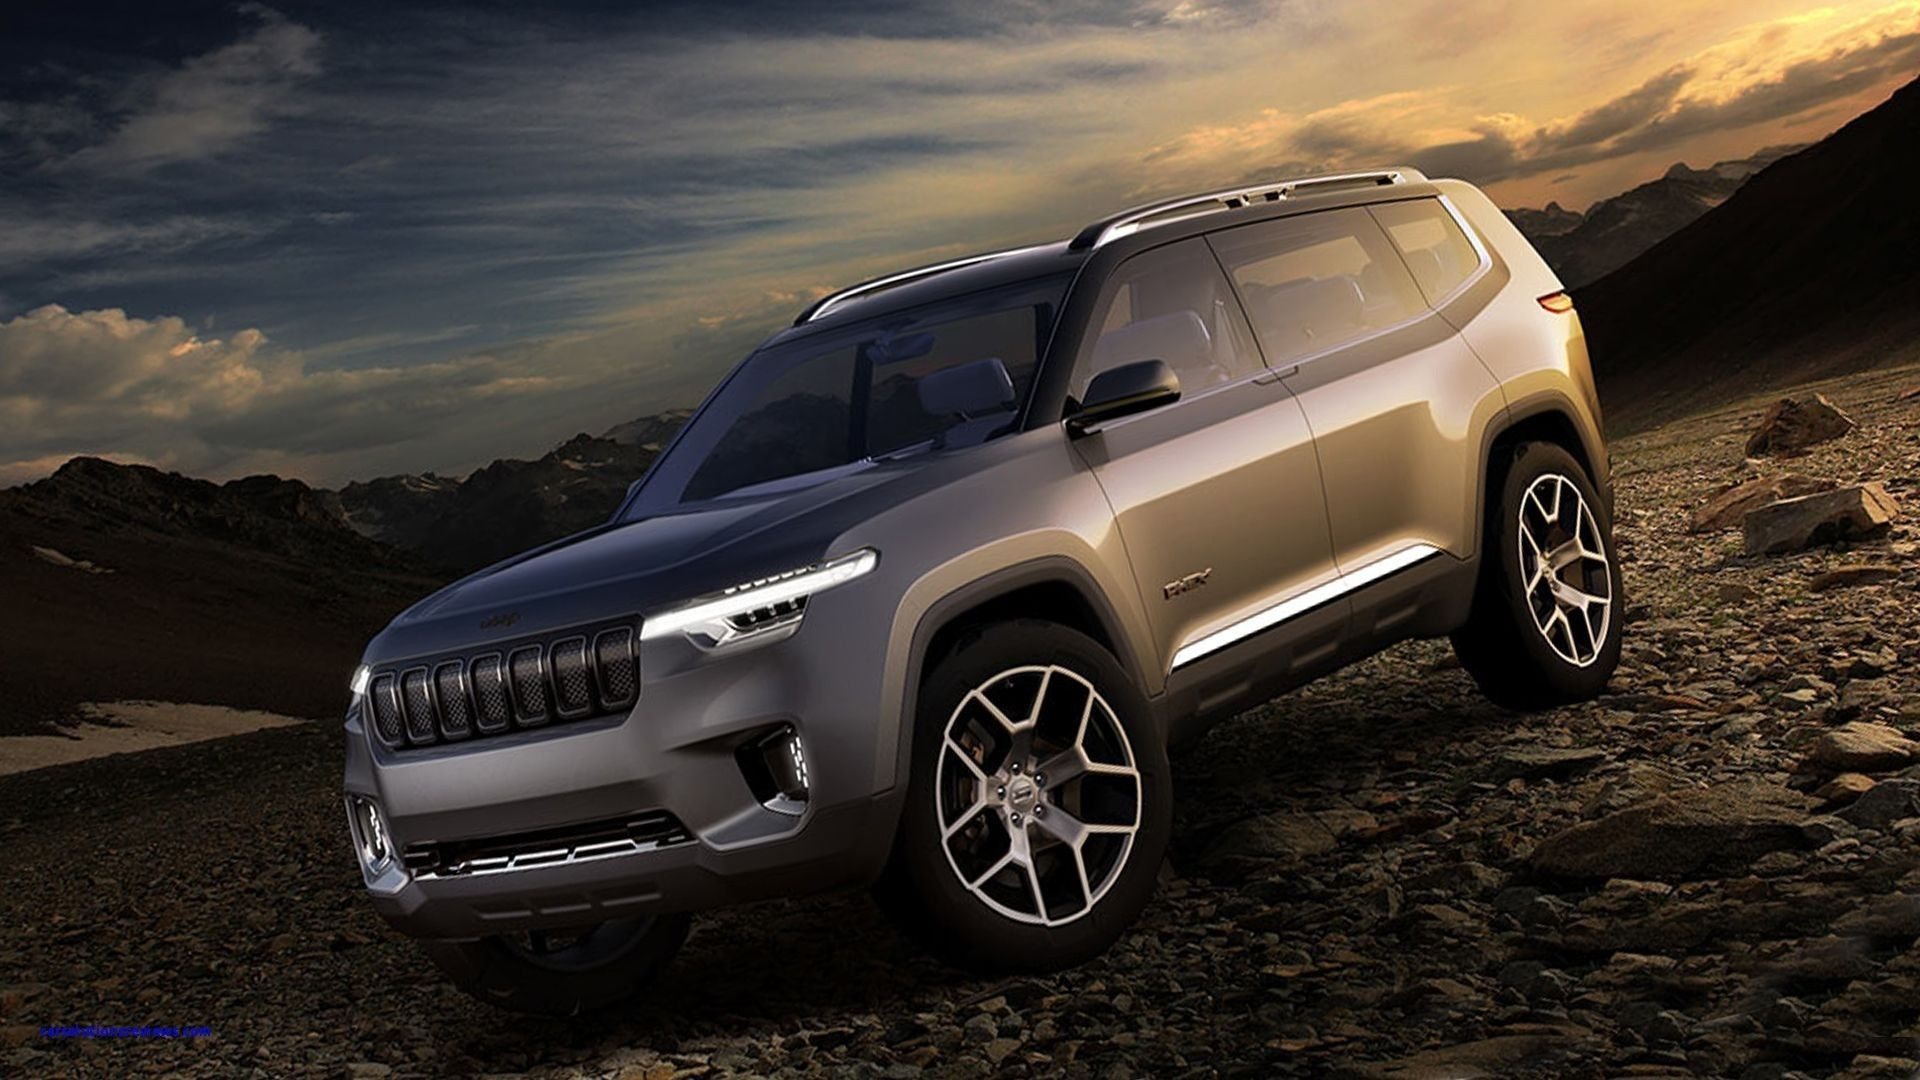 2019 Jeep Grand Cherokee Diesel Review Jeep Grand Cherokee Jeep Grand Cherokee Diesel Jeep Cherokee